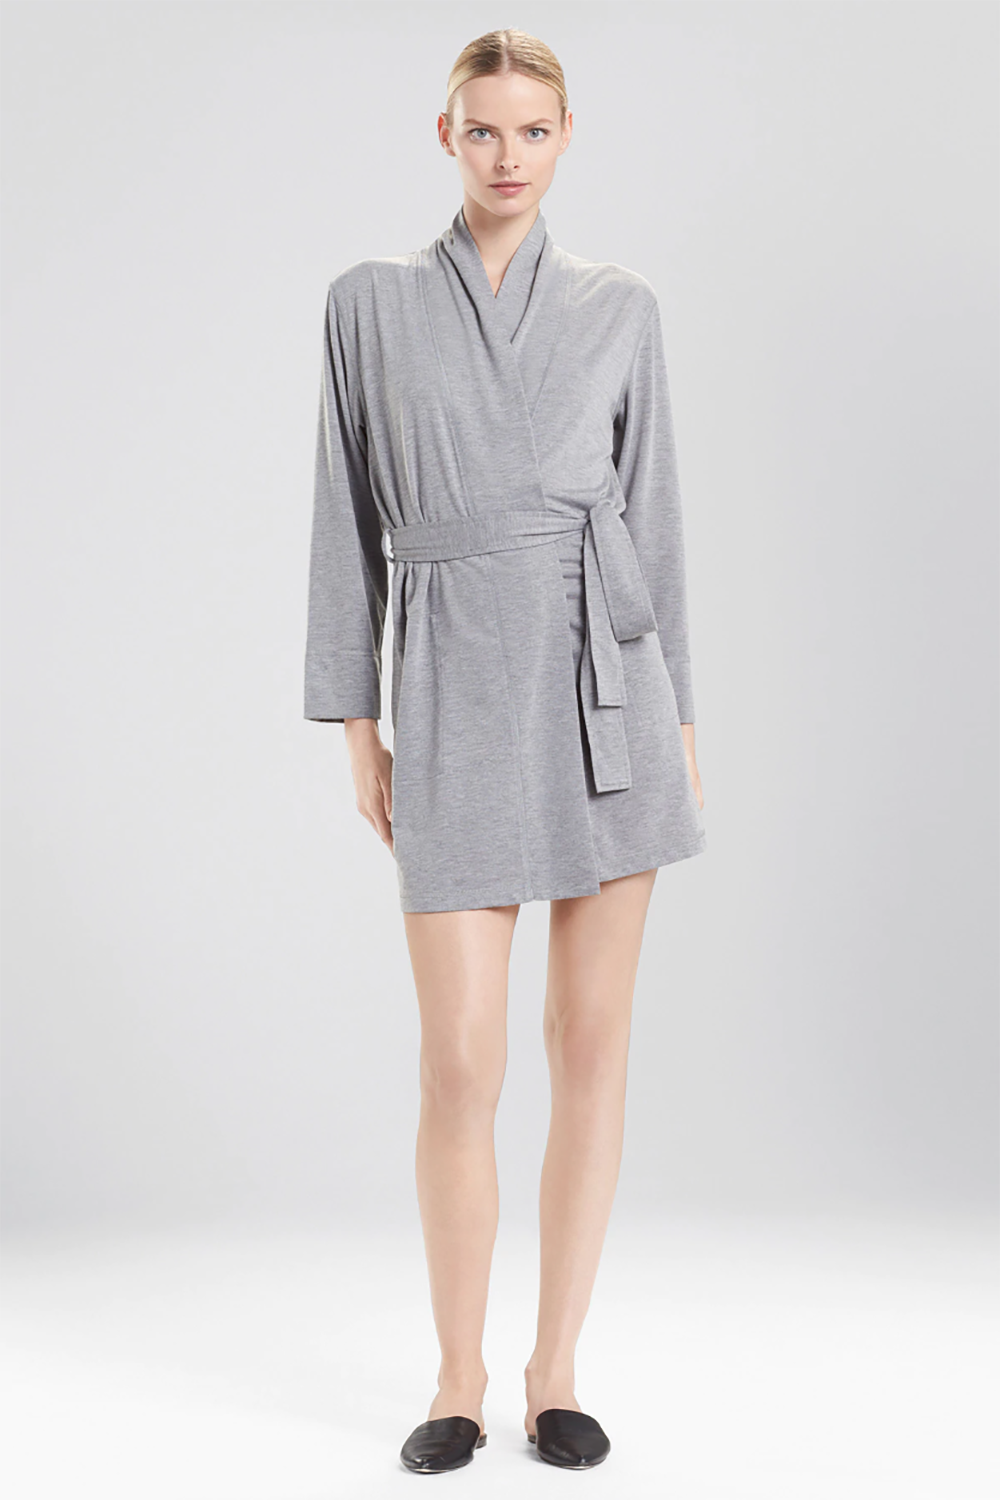 10 Best Bathrobes for Women 2019 - Dreamy Robes to Lounge Around In d8b7dc180